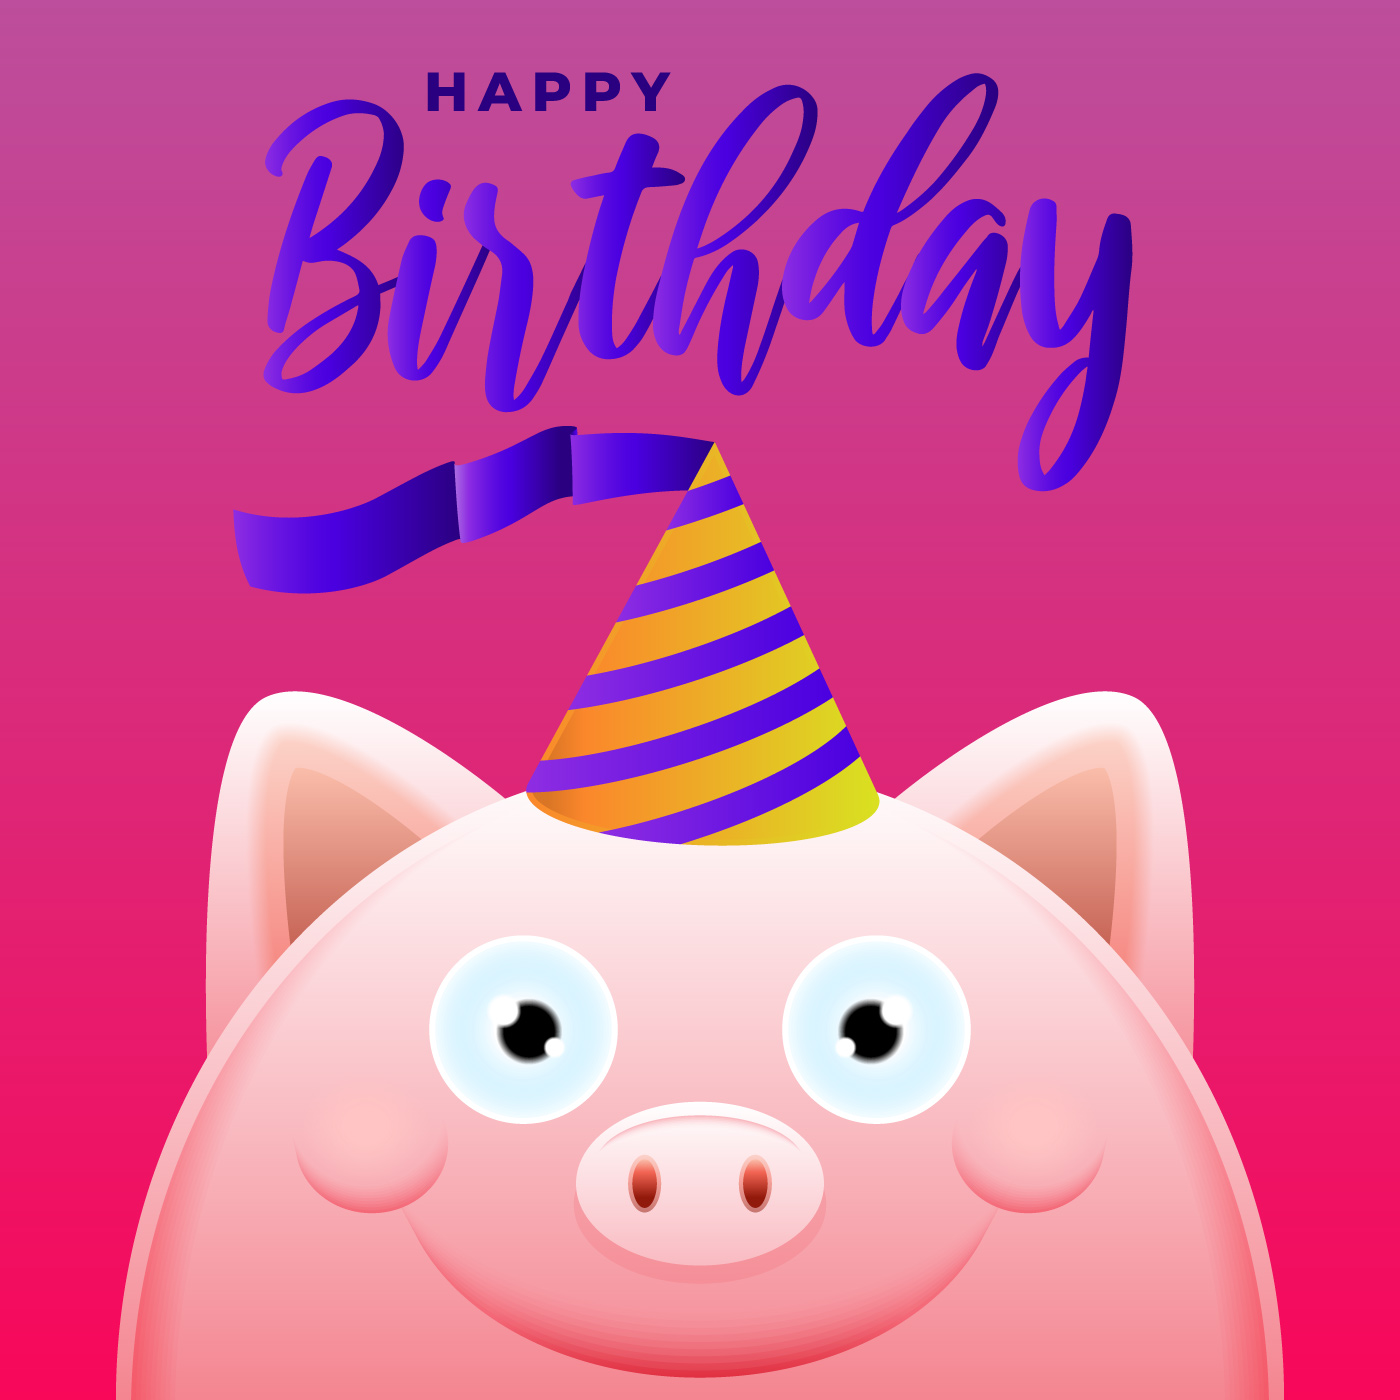 Happy Birthday Greeting Card With Cute Pig Vector ... (1400 x 1400 Pixel)